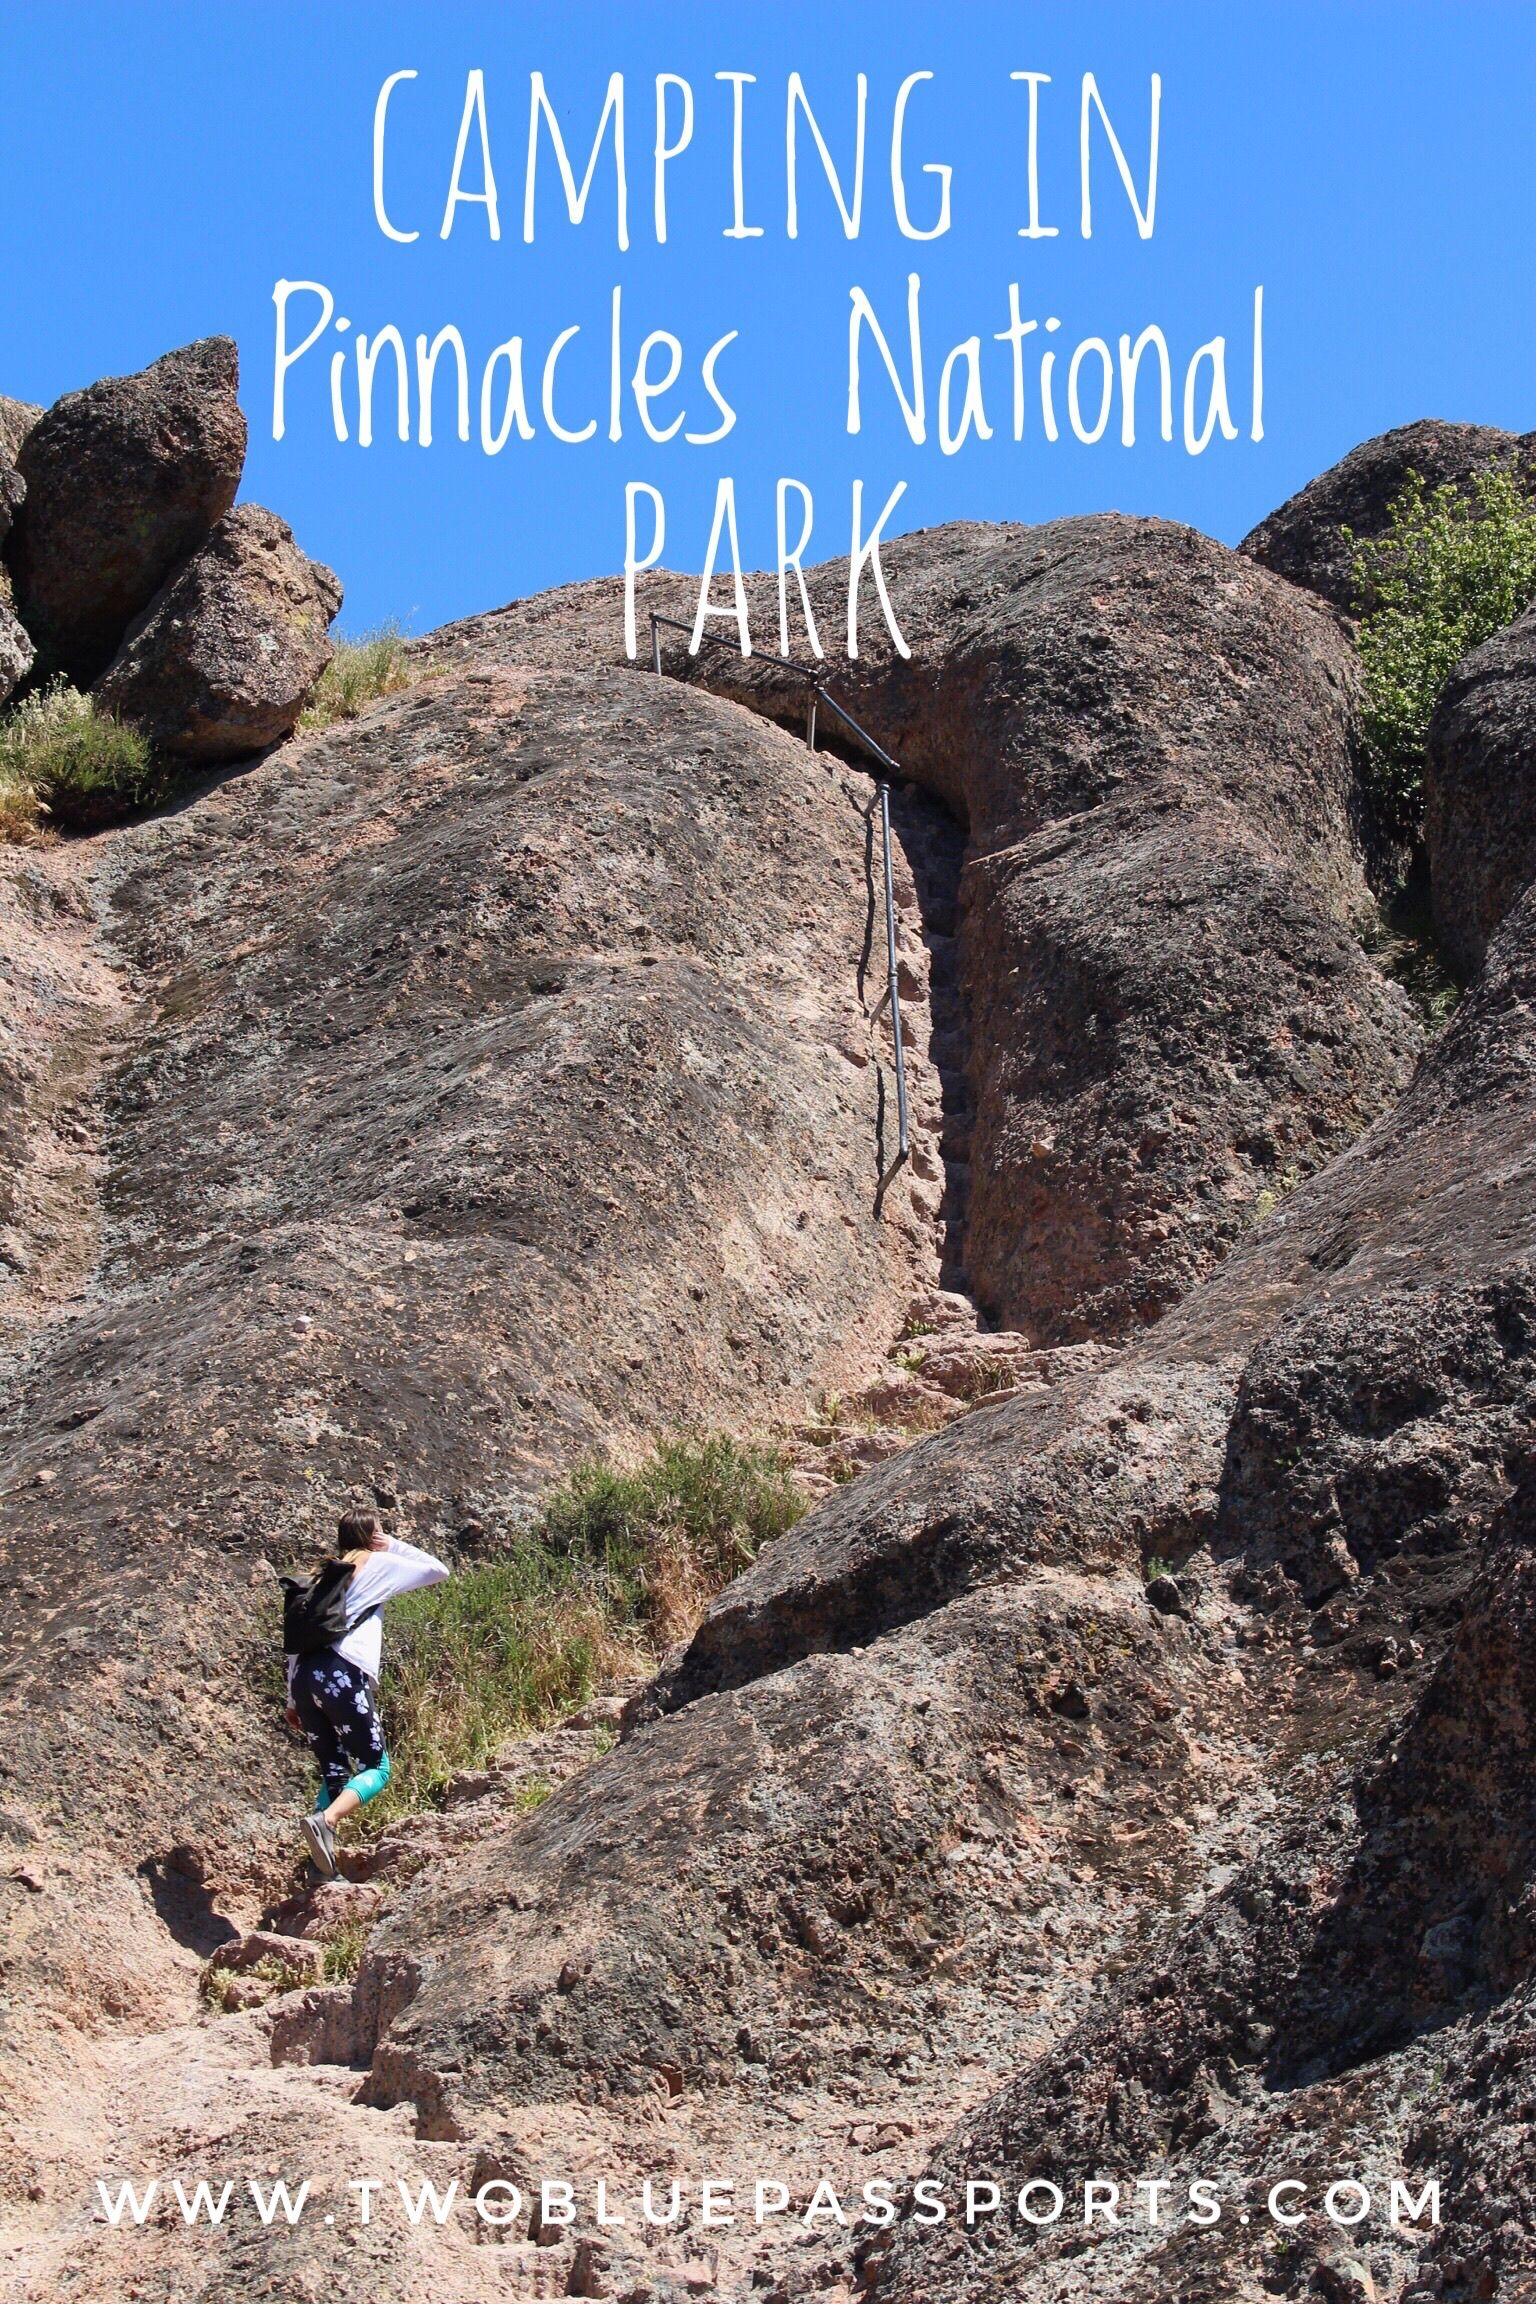 A Weekend Camping in Pinnacles National Park — Two Blue